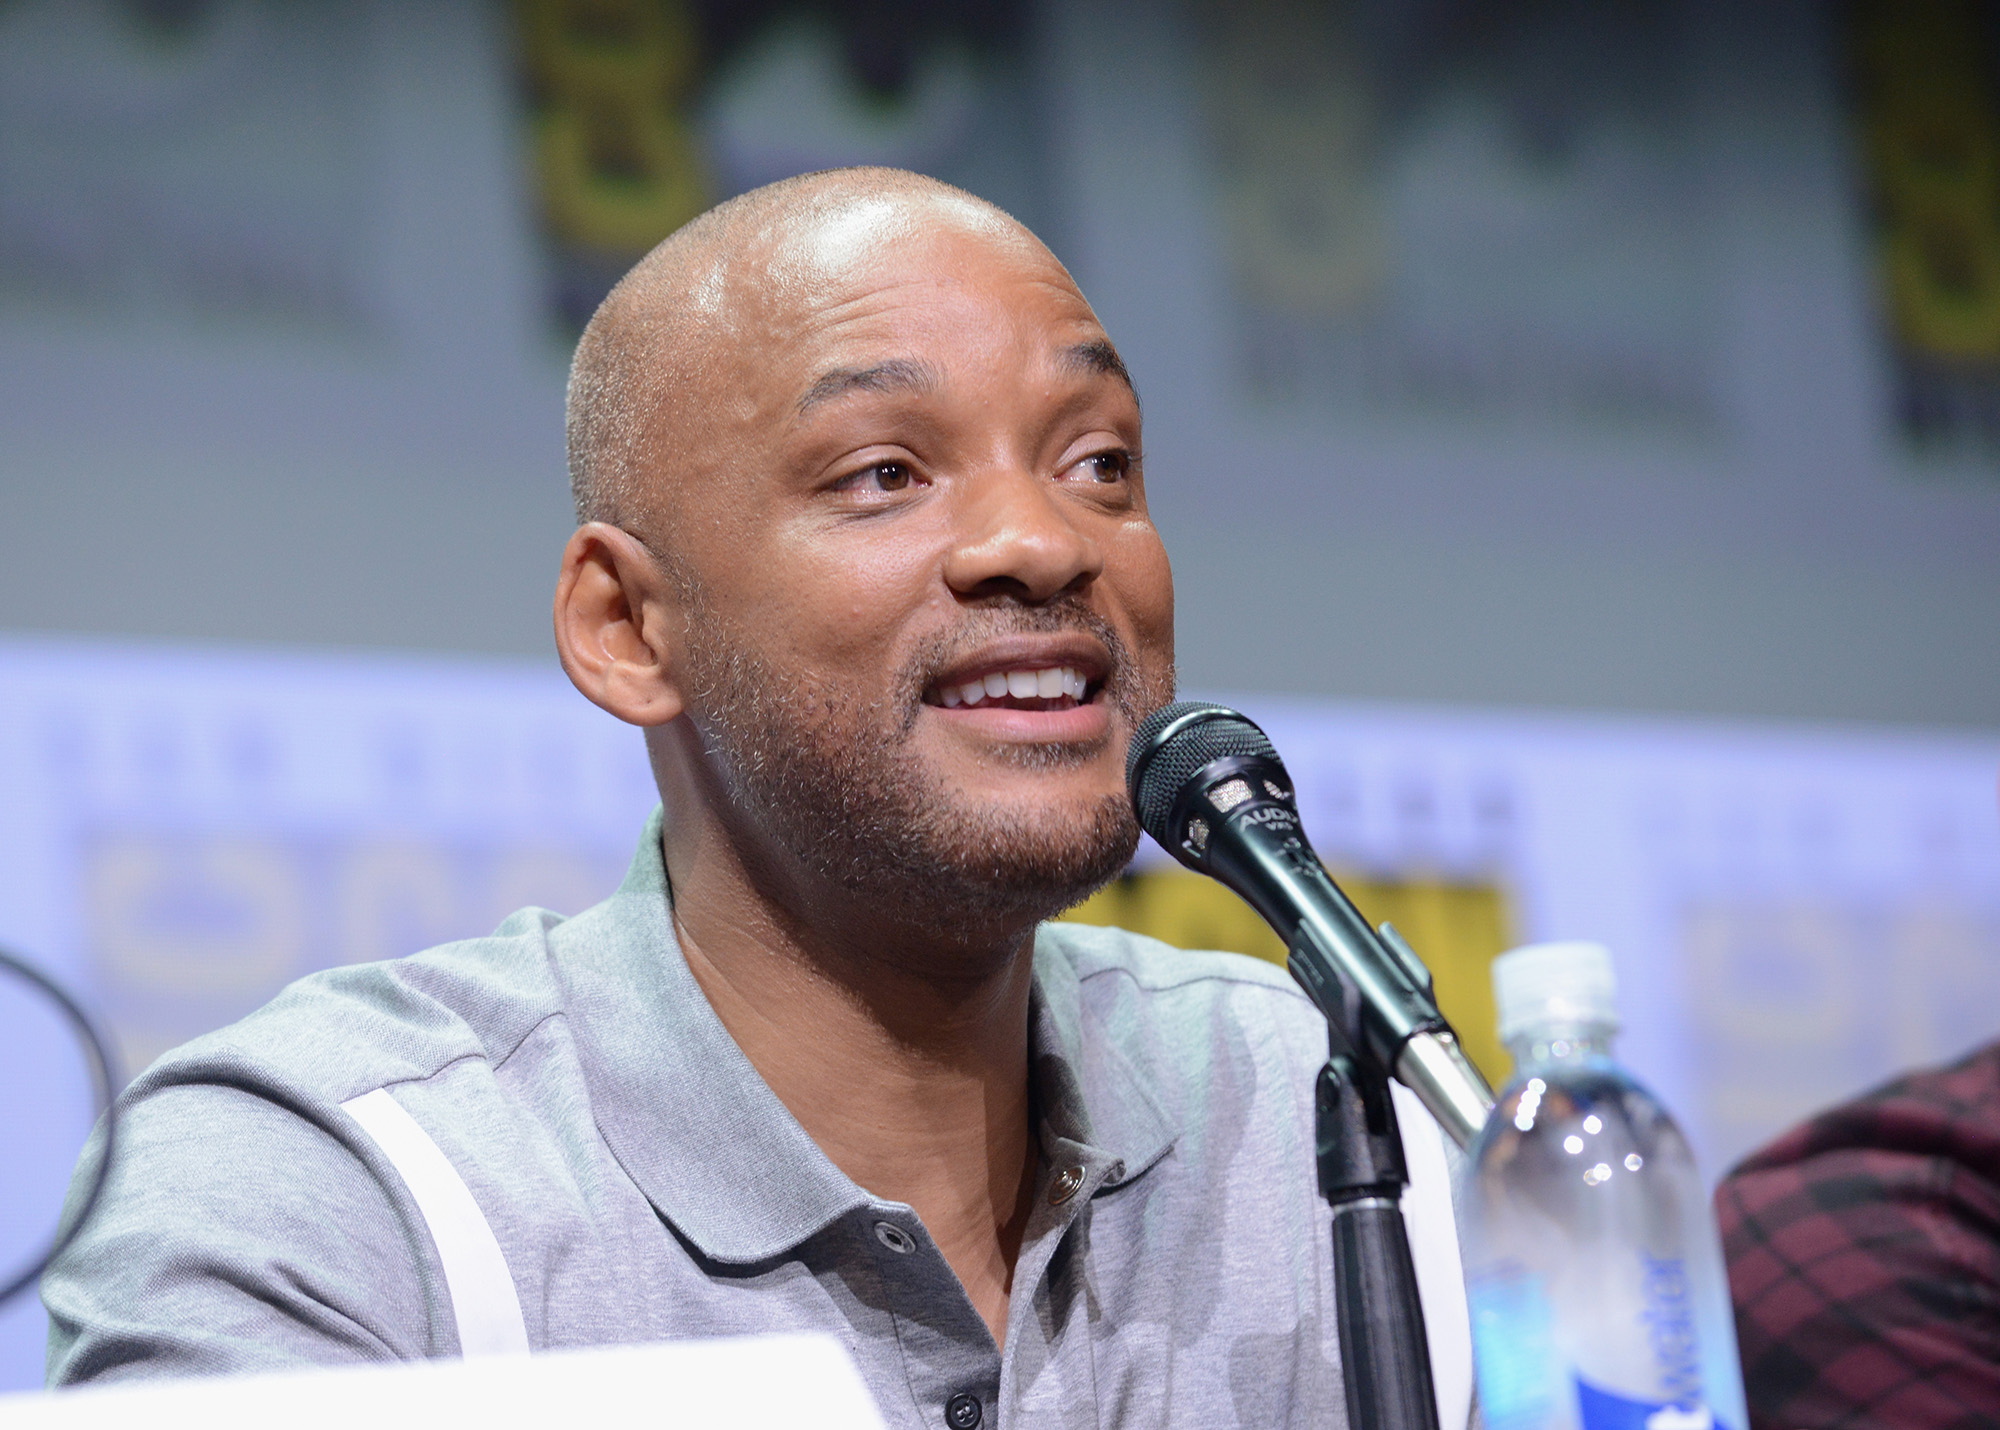 Will Smith Responds To Viral Photo Looks Like Uncle Phil Time